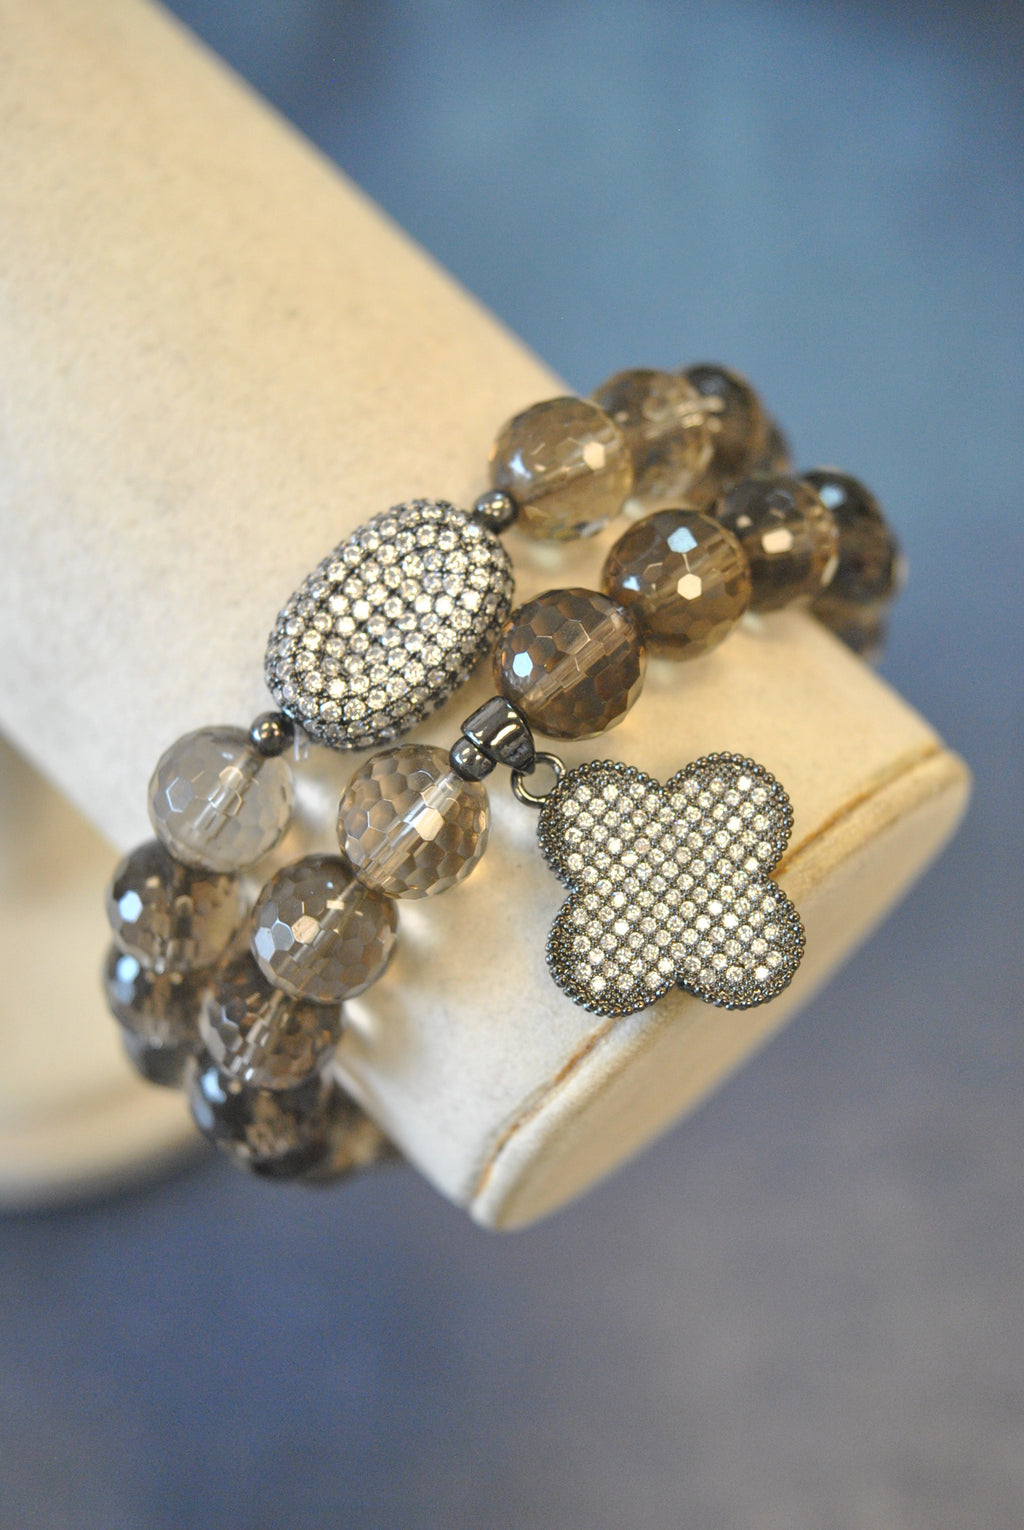 SMOKY QUARTZ STRETCHY BRACELET SET WITH CHARMS